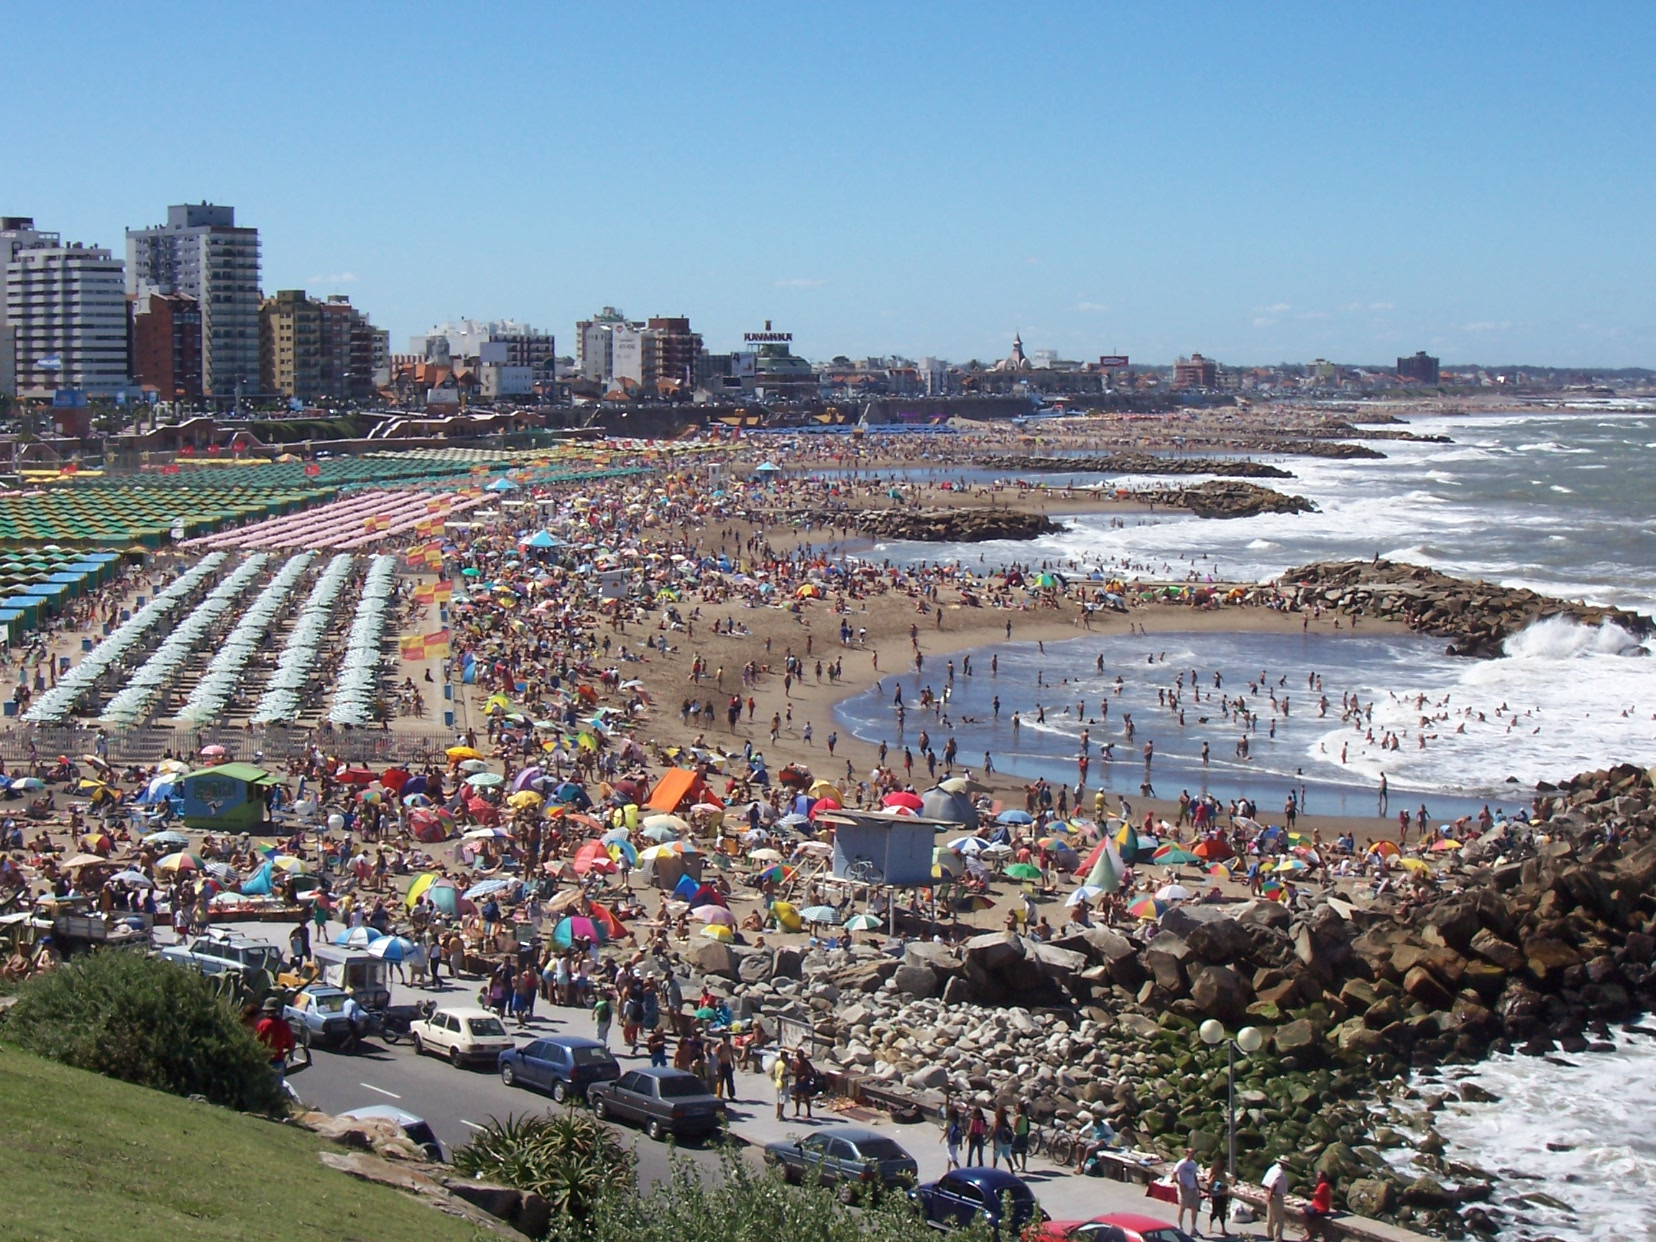 One Of The Beaches Mar Del Plata During Summer Tourism Season